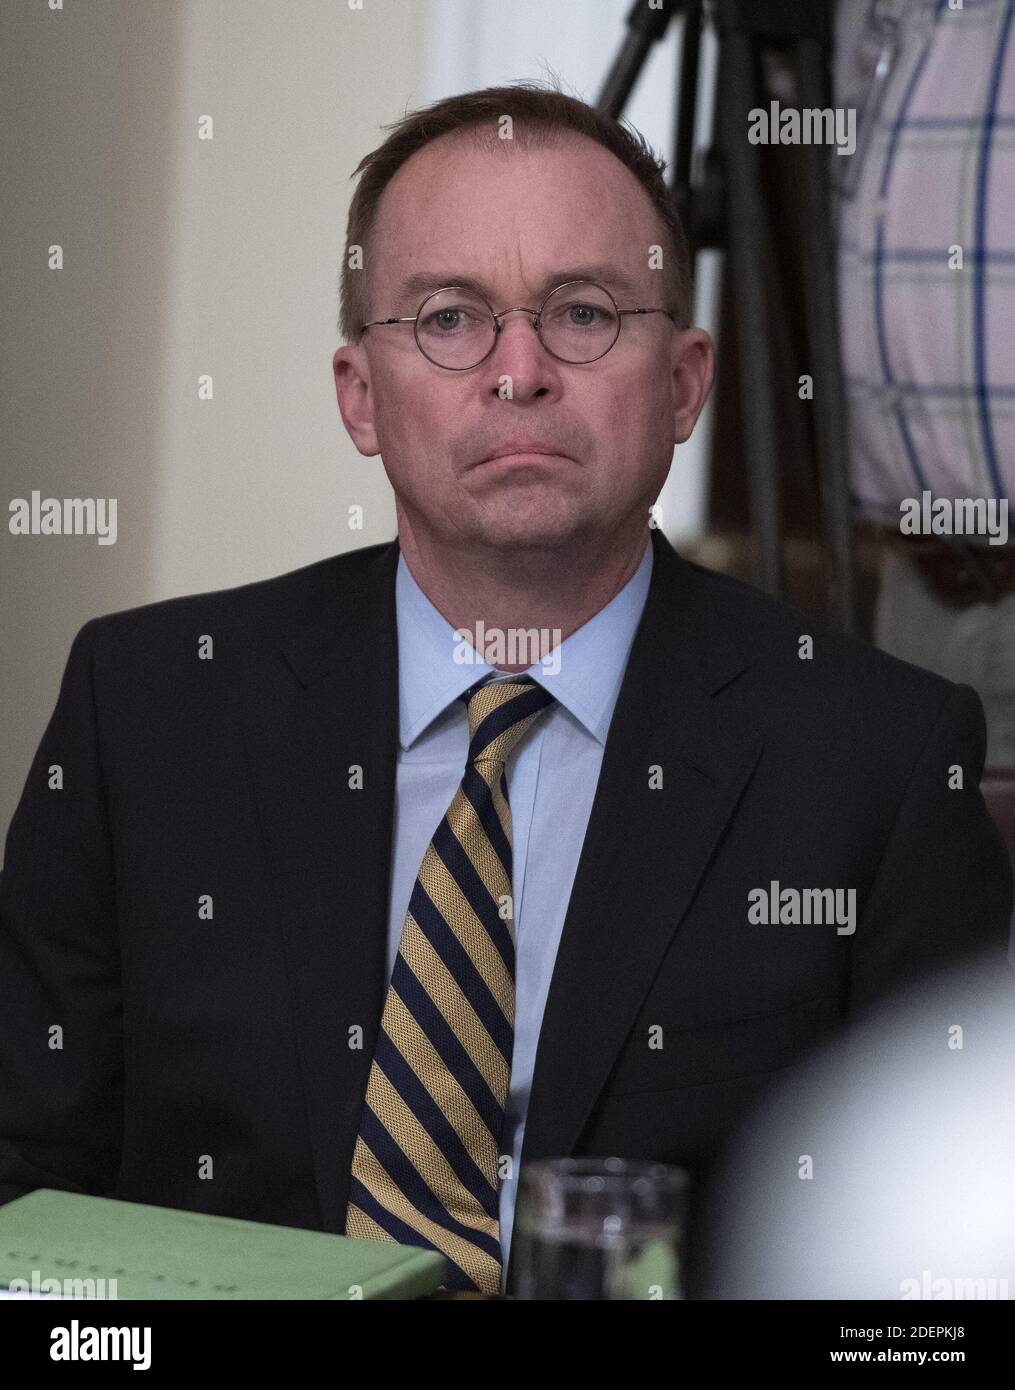 Acting White House Chief of Staff and Director of the Office of Management and Budget (OMB) Mick Mulvaney looks on as United States President Donald J. Trump participates in a briefing with senior military leaders in the Cabinet Room of the White House in Washington, DC, USA on Monday, October 7, 2019. Photo by Ron Sachs/CNP/ABACAPRESS.COM Stock Photo